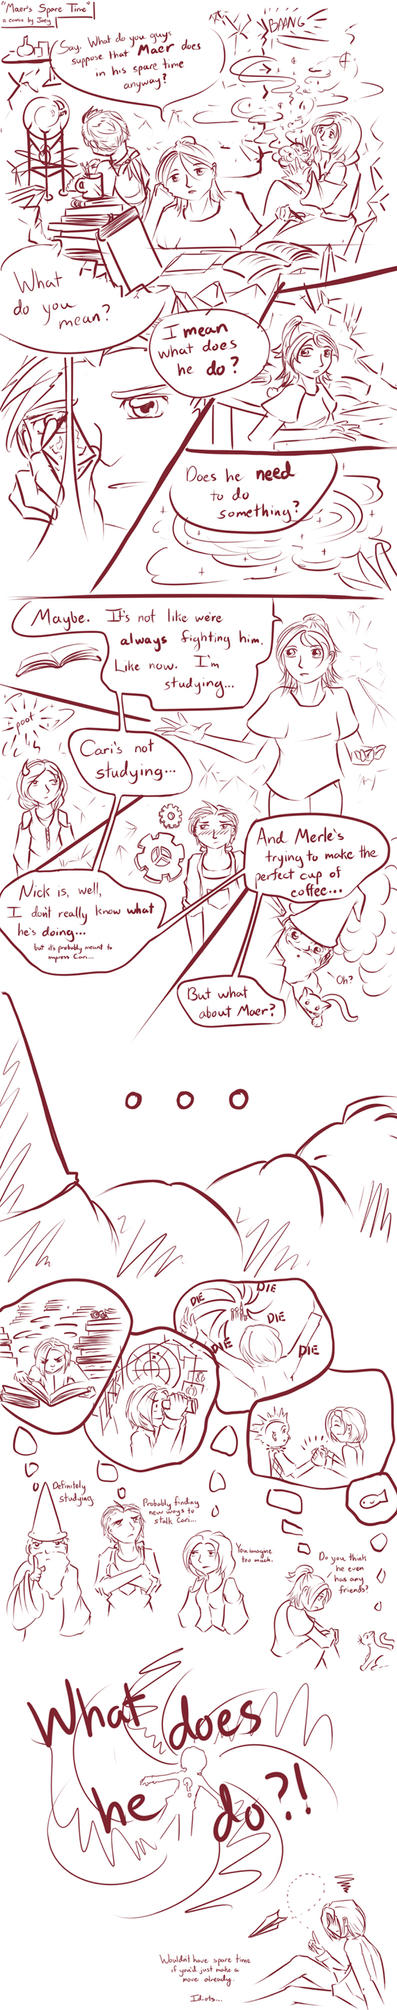 Maer's free time by just-joey